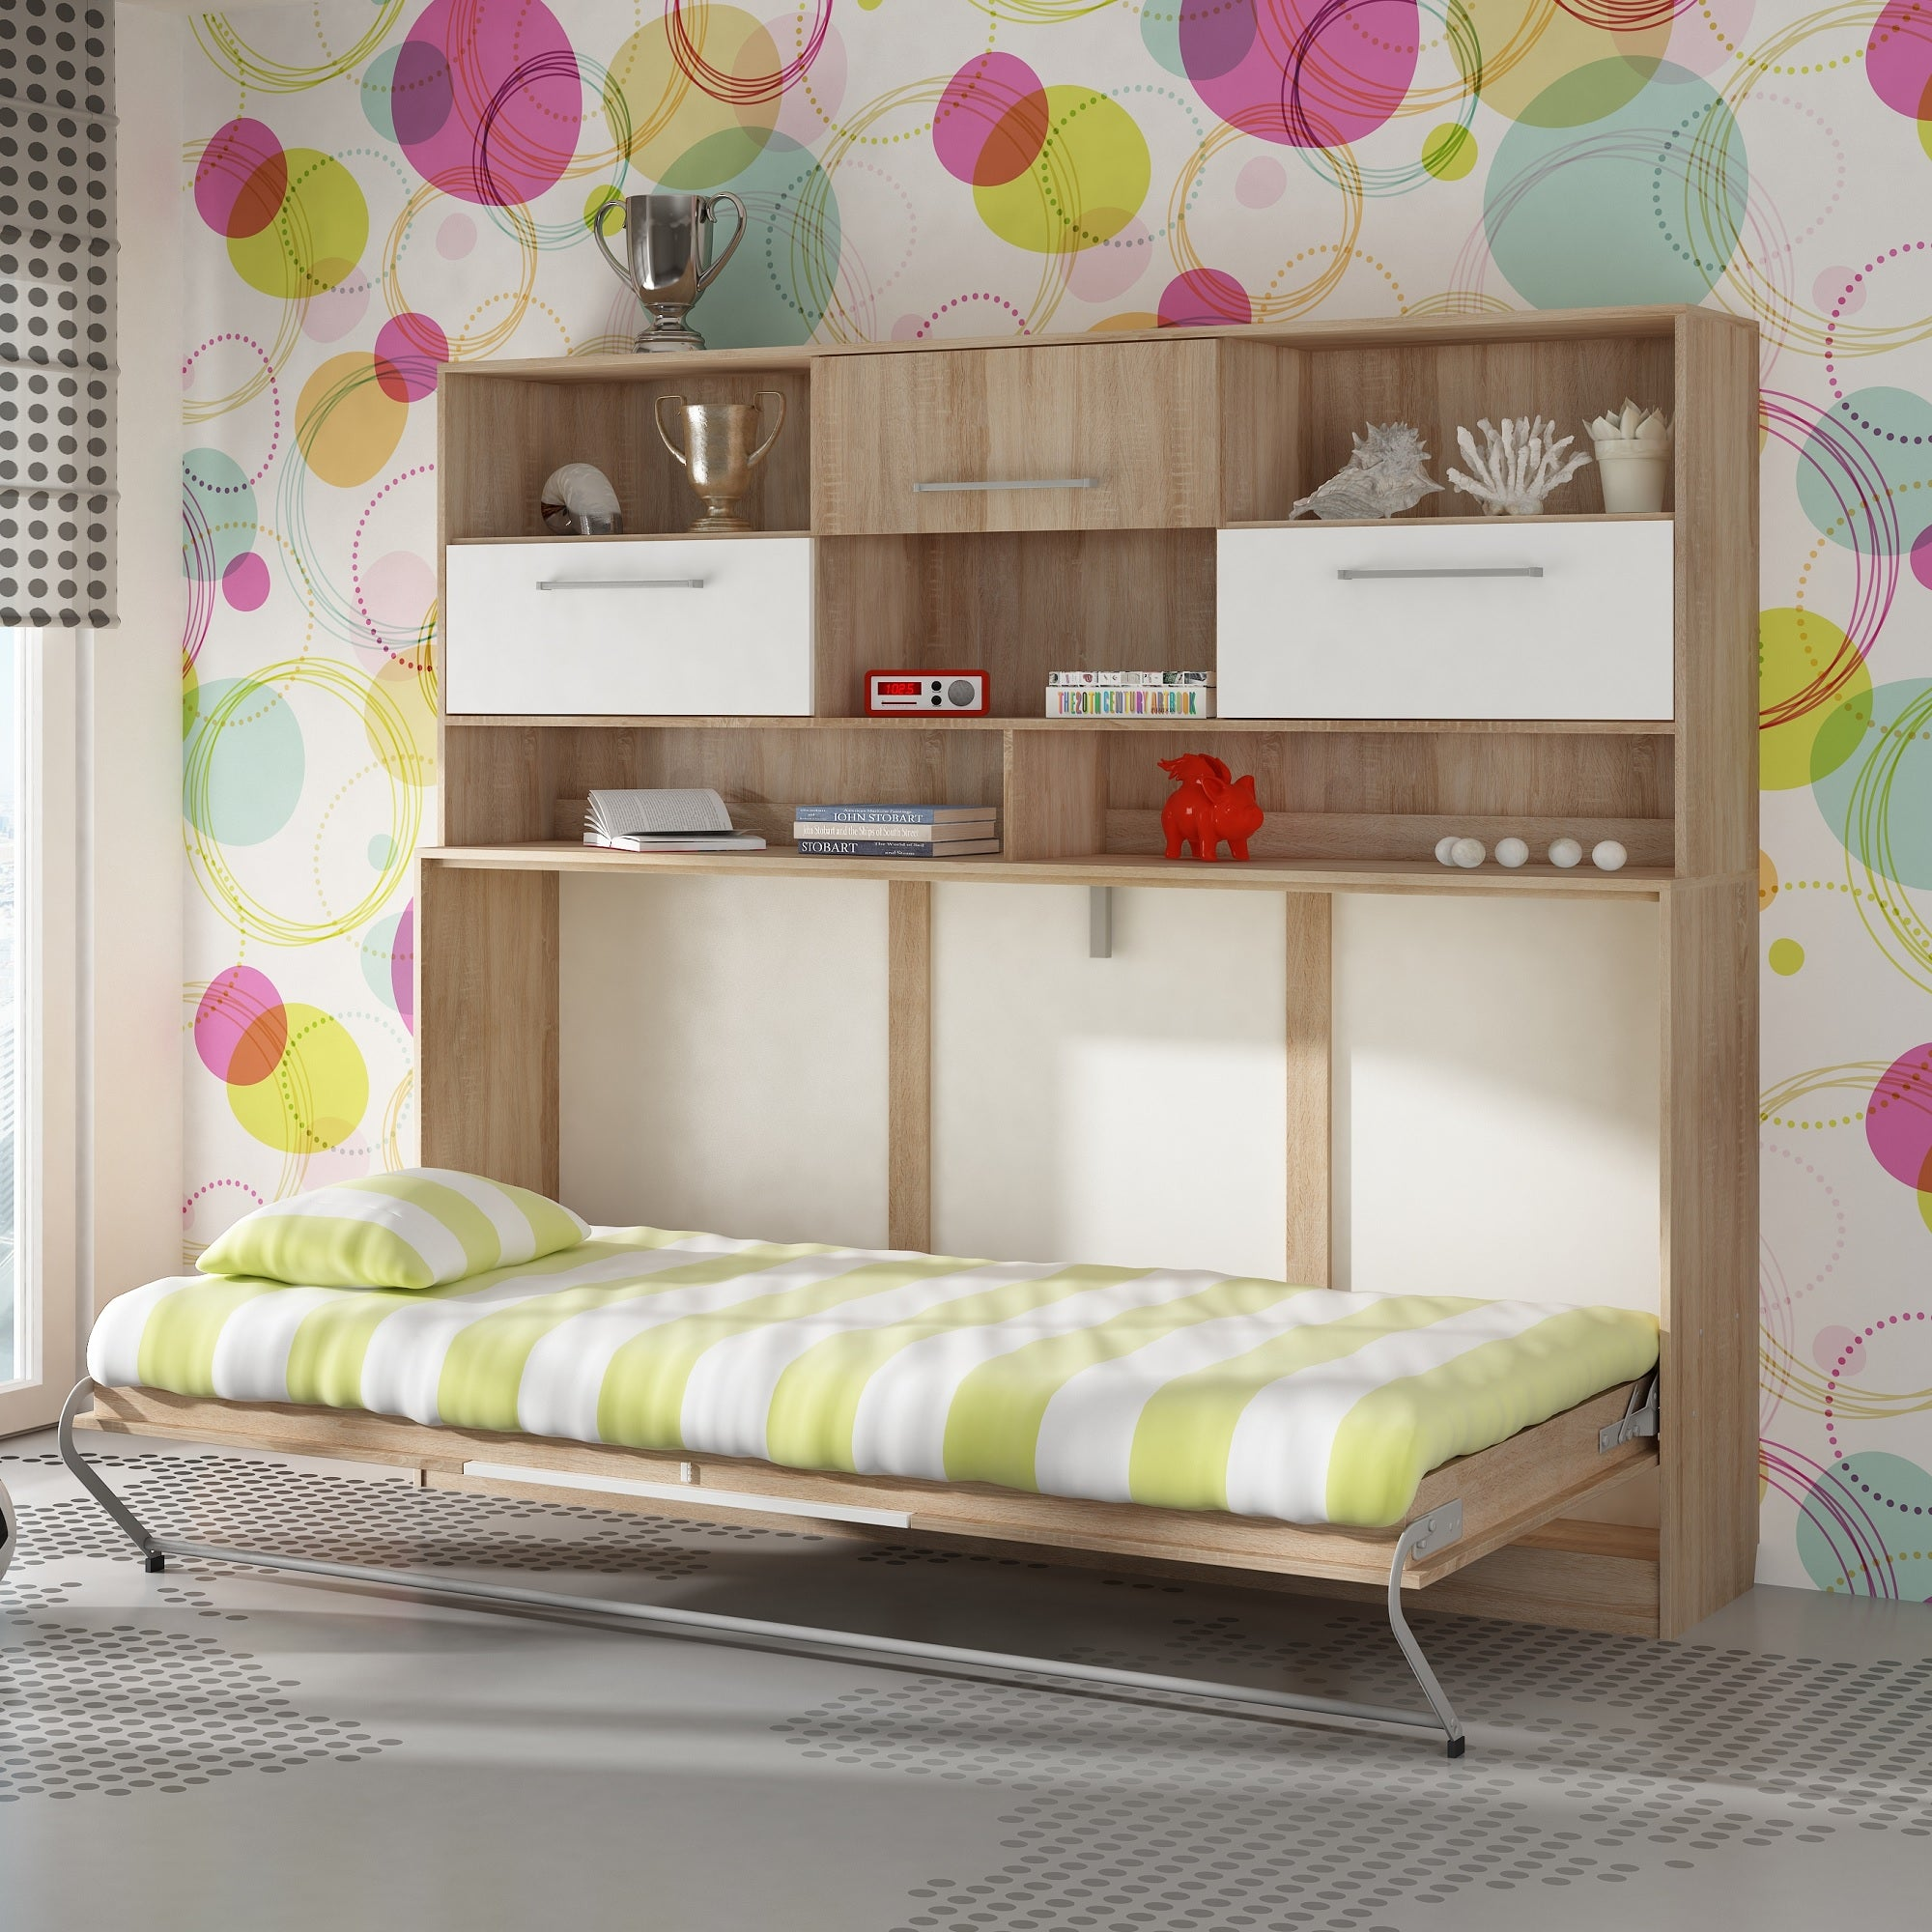 Roger European Single Kids Murphy Bed With Storage